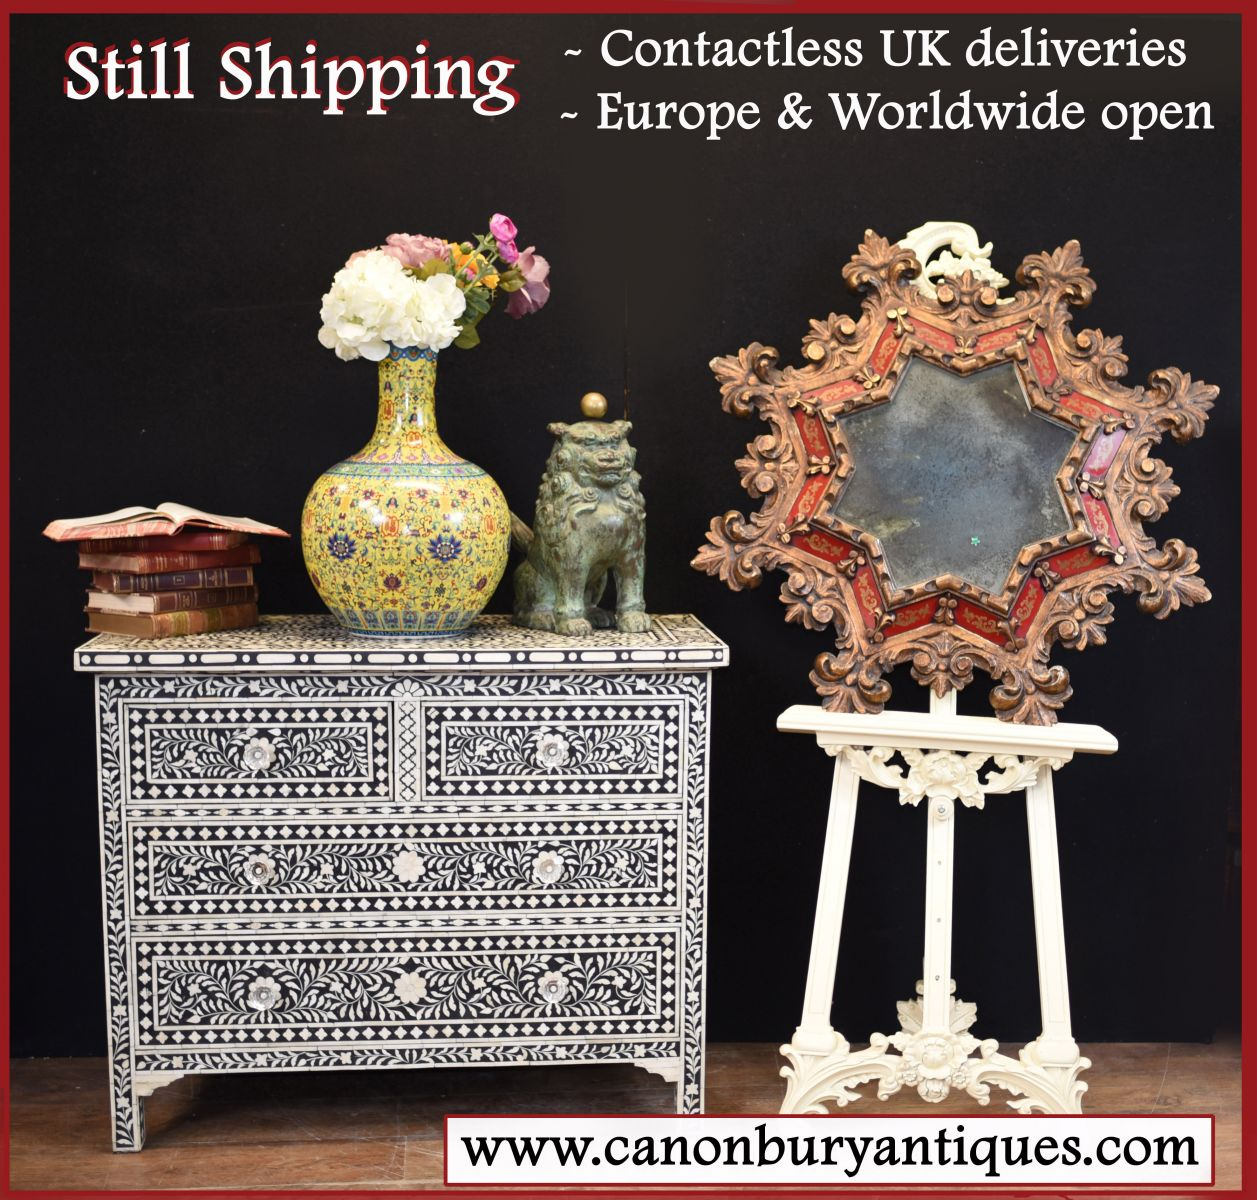 Canonbury Antiques still fulfilling all orders to UK and rest of world